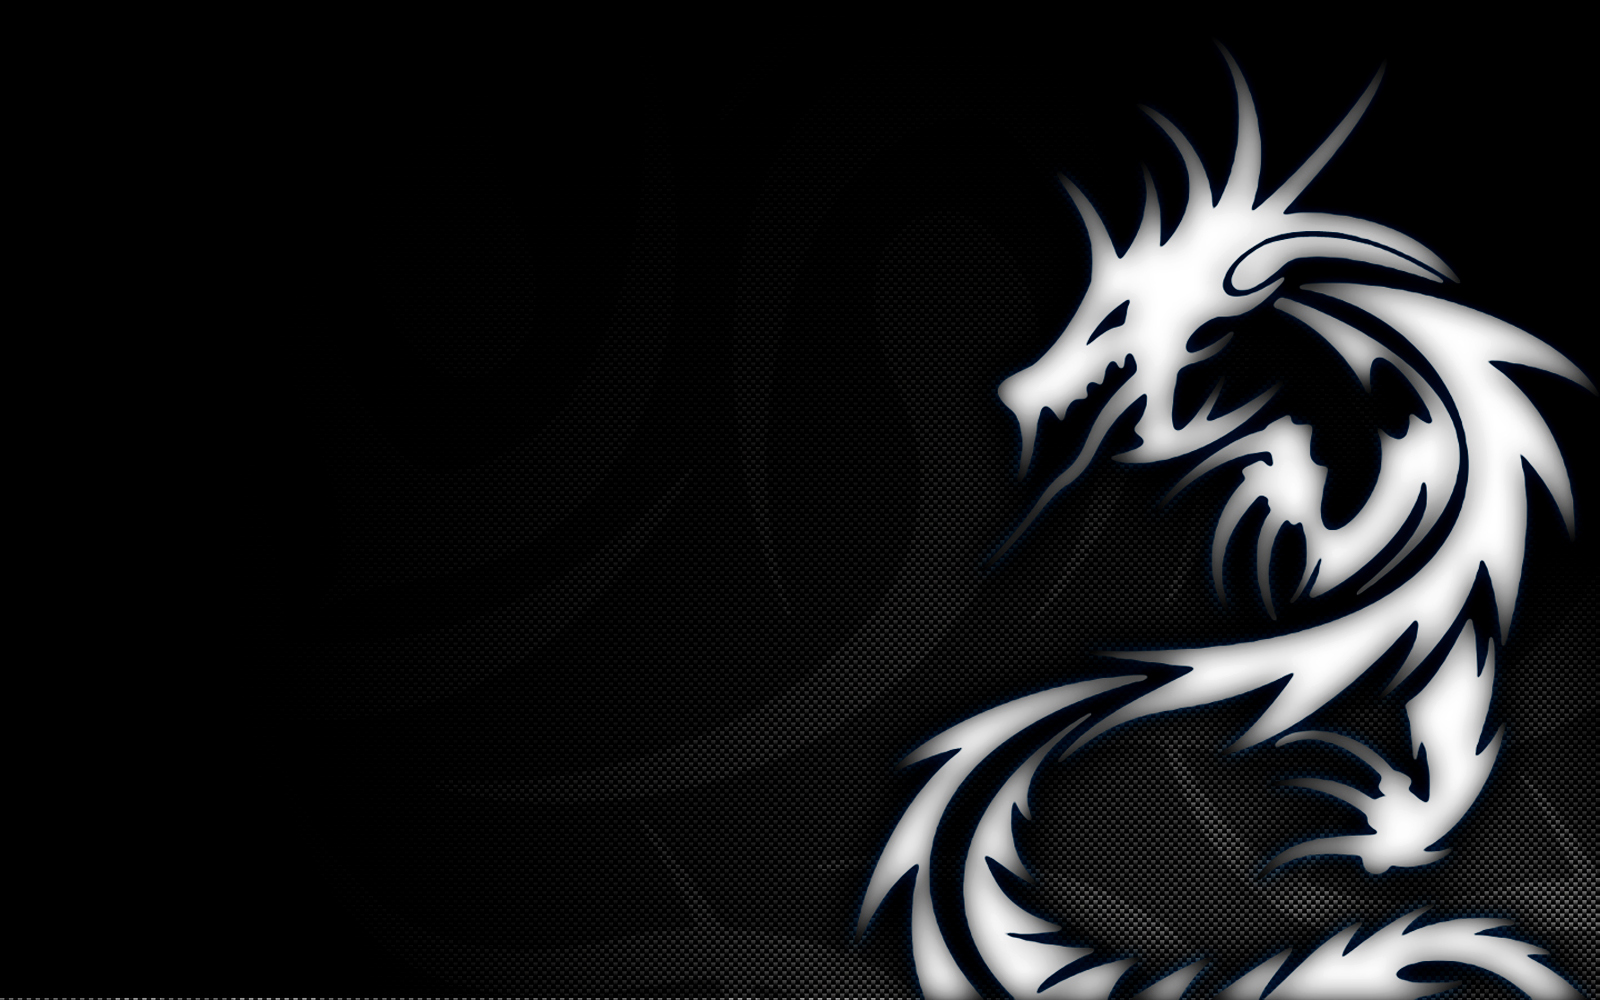 Dragon Logo Designs HD Wallpapers HD Wallpapers 1600x1000